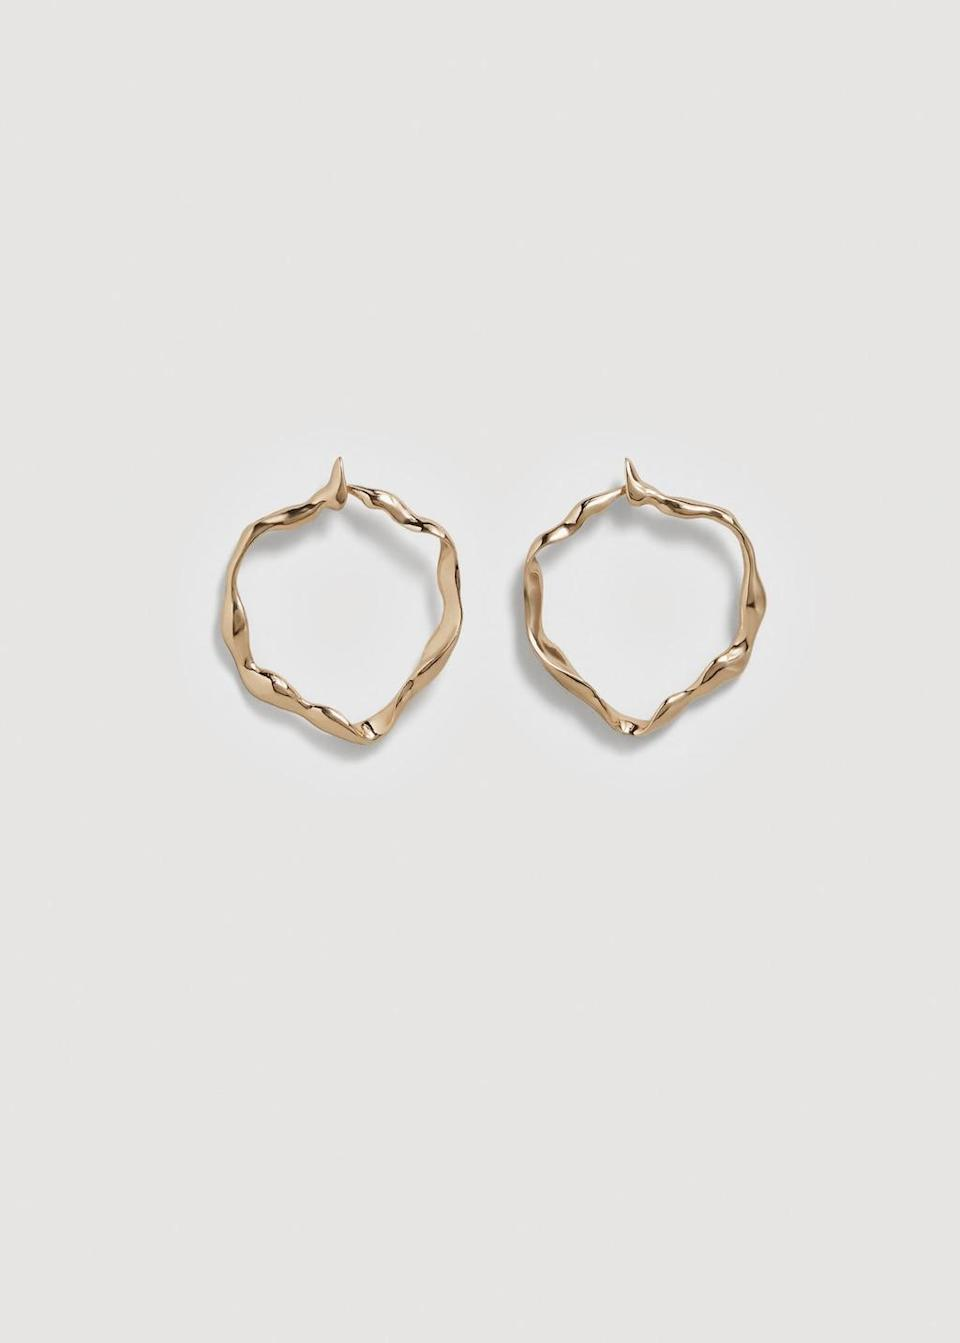 """<p>Mango never let us down when it comes to affordable jewellery that actually looks expensive, and these beat-up looking hoops tick all the right boxes. <em><a rel=""""nofollow noopener"""" href=""""https://shop.mango.com/gb/women/jewellery-earrings/embossed-hoop-earrings_23040447.html?c=OR&n=1&s=accesorios.accesorio;48,448"""" target=""""_blank"""" data-ylk=""""slk:Buy here."""" class=""""link rapid-noclick-resp"""">Buy here.</a></em> </p>"""